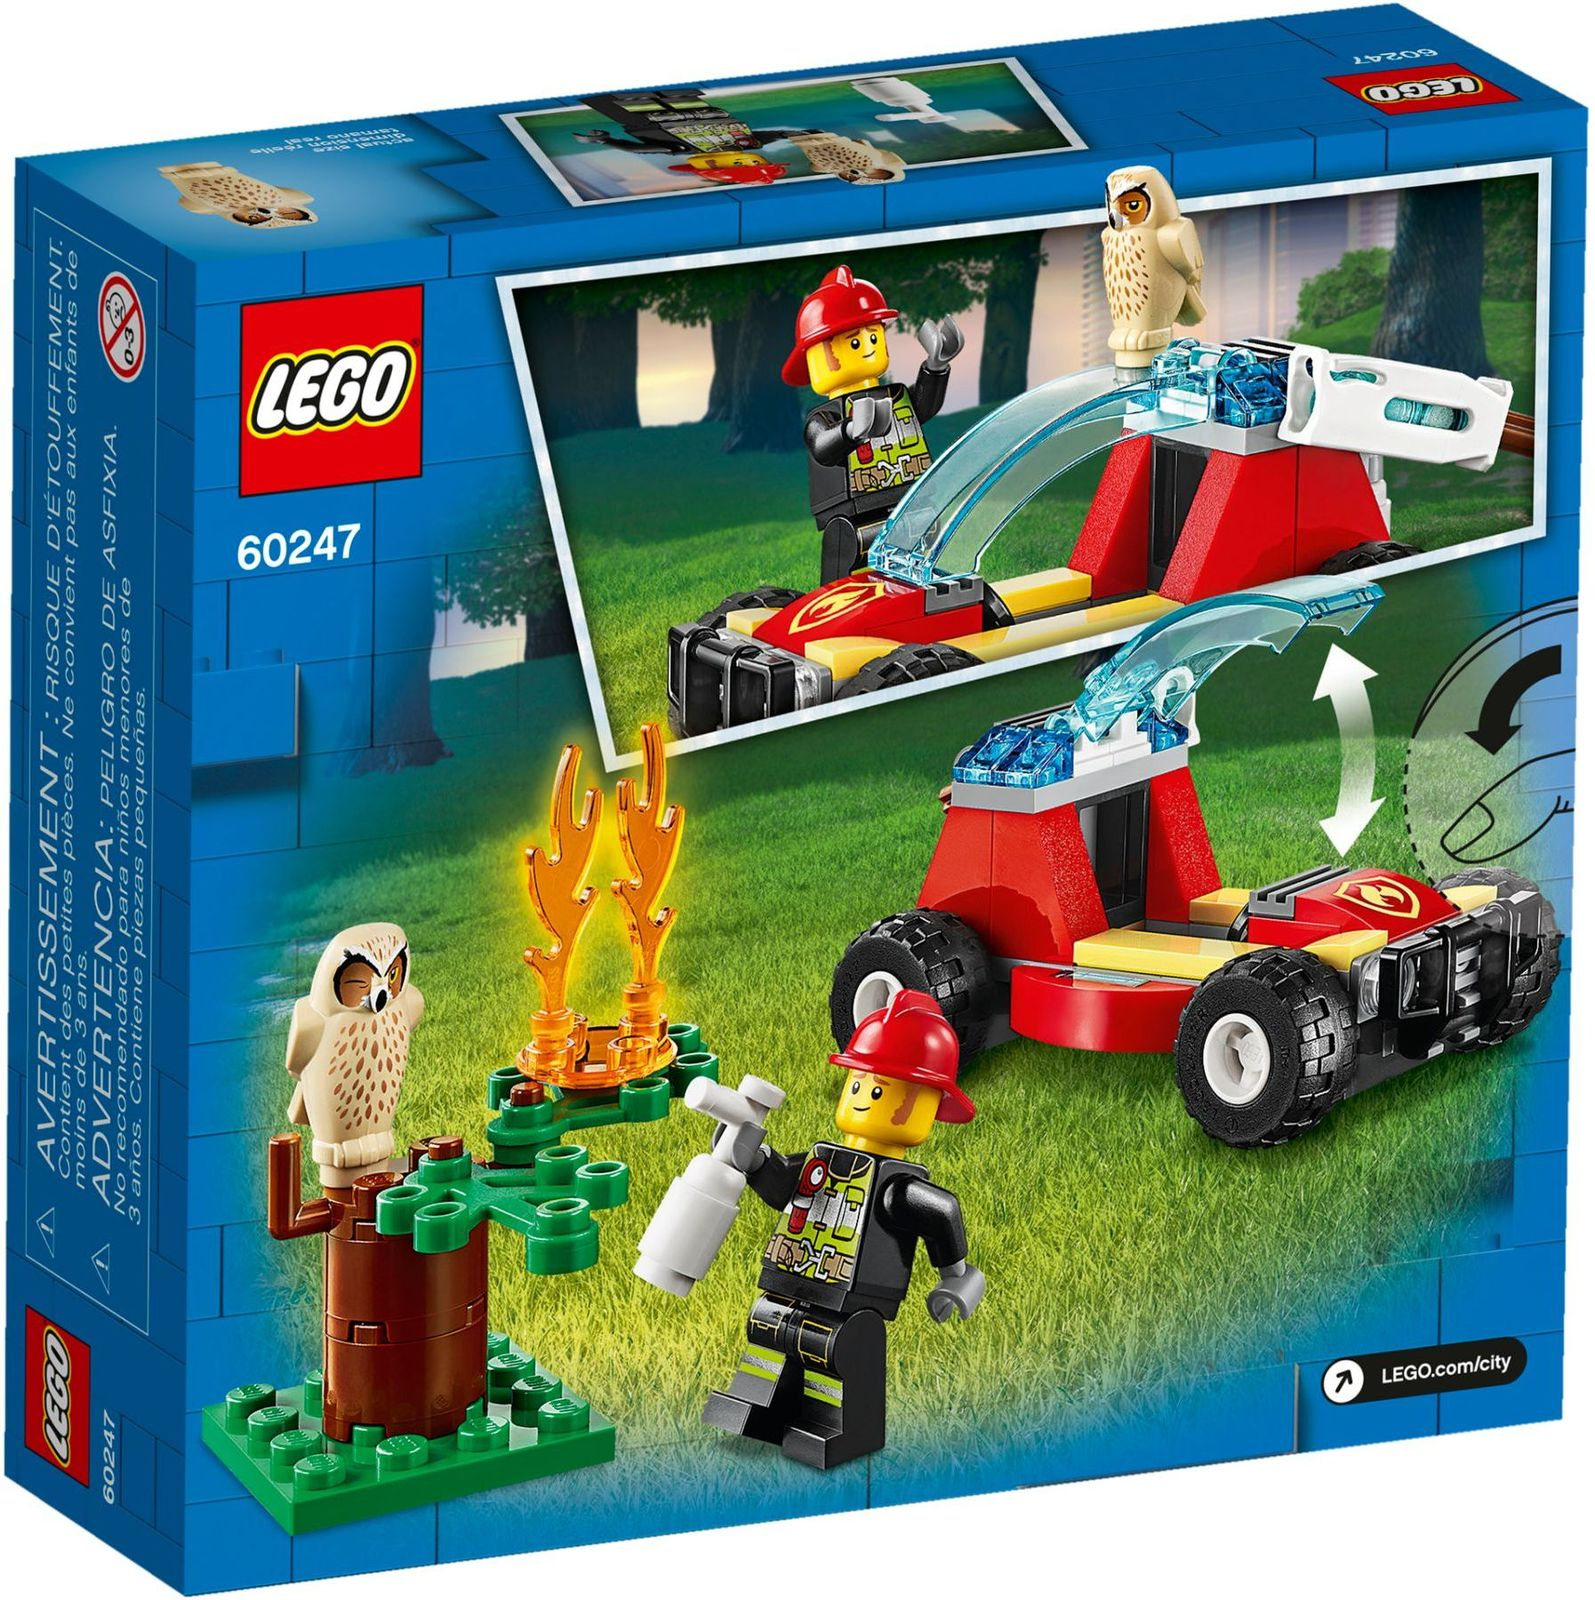 LEGO City: Forest Fire - (60247)